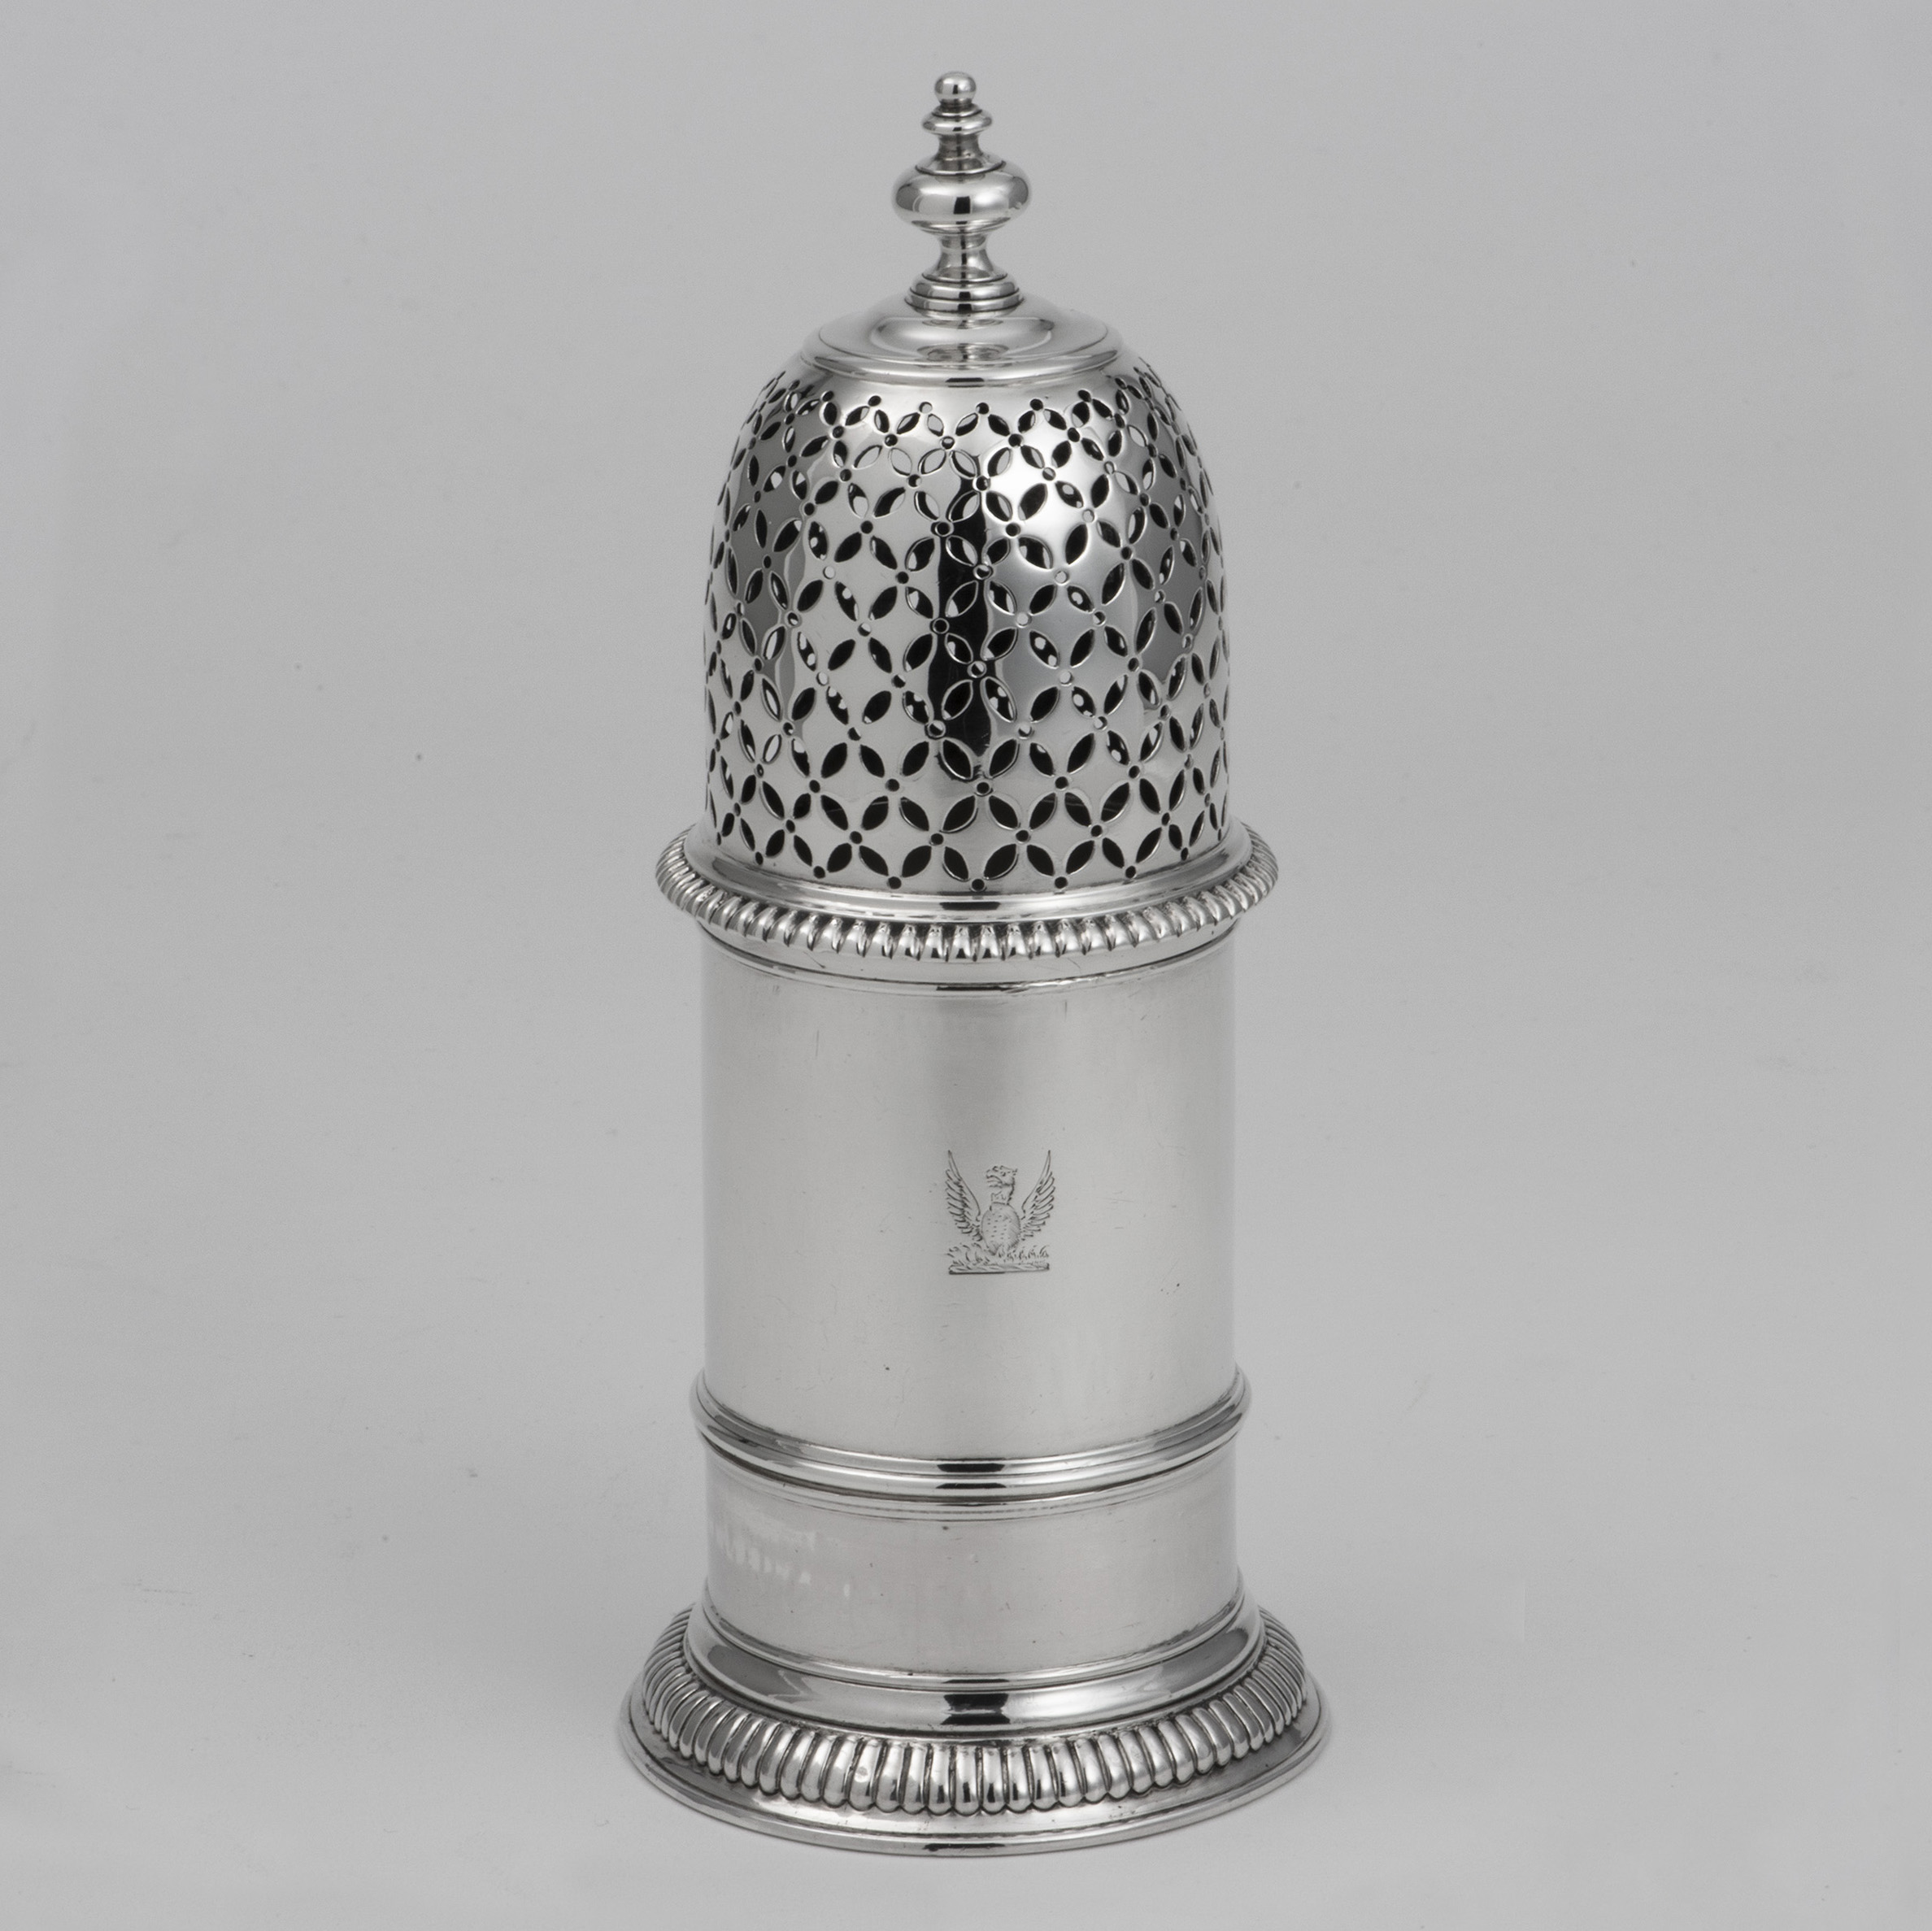 A Large Victorian Silver Caster In The Early 18th Century Style.